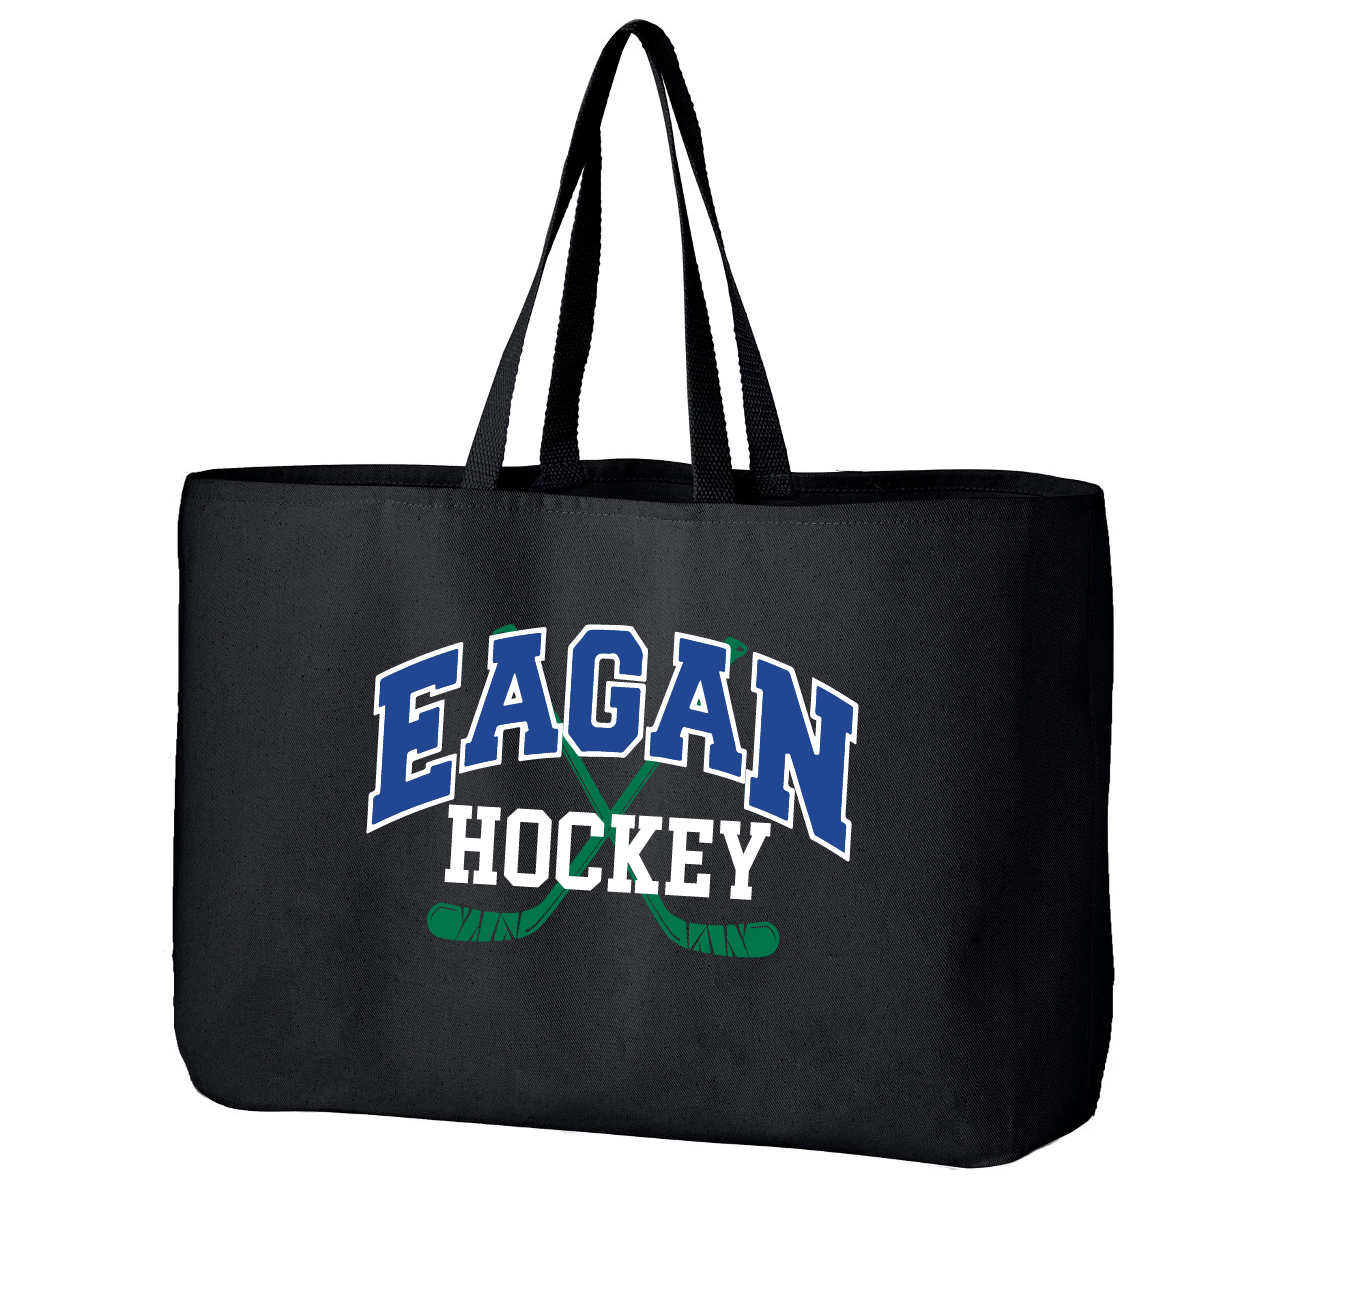 Eagan Hockey - Hockey Stick Design Jumbo Tote